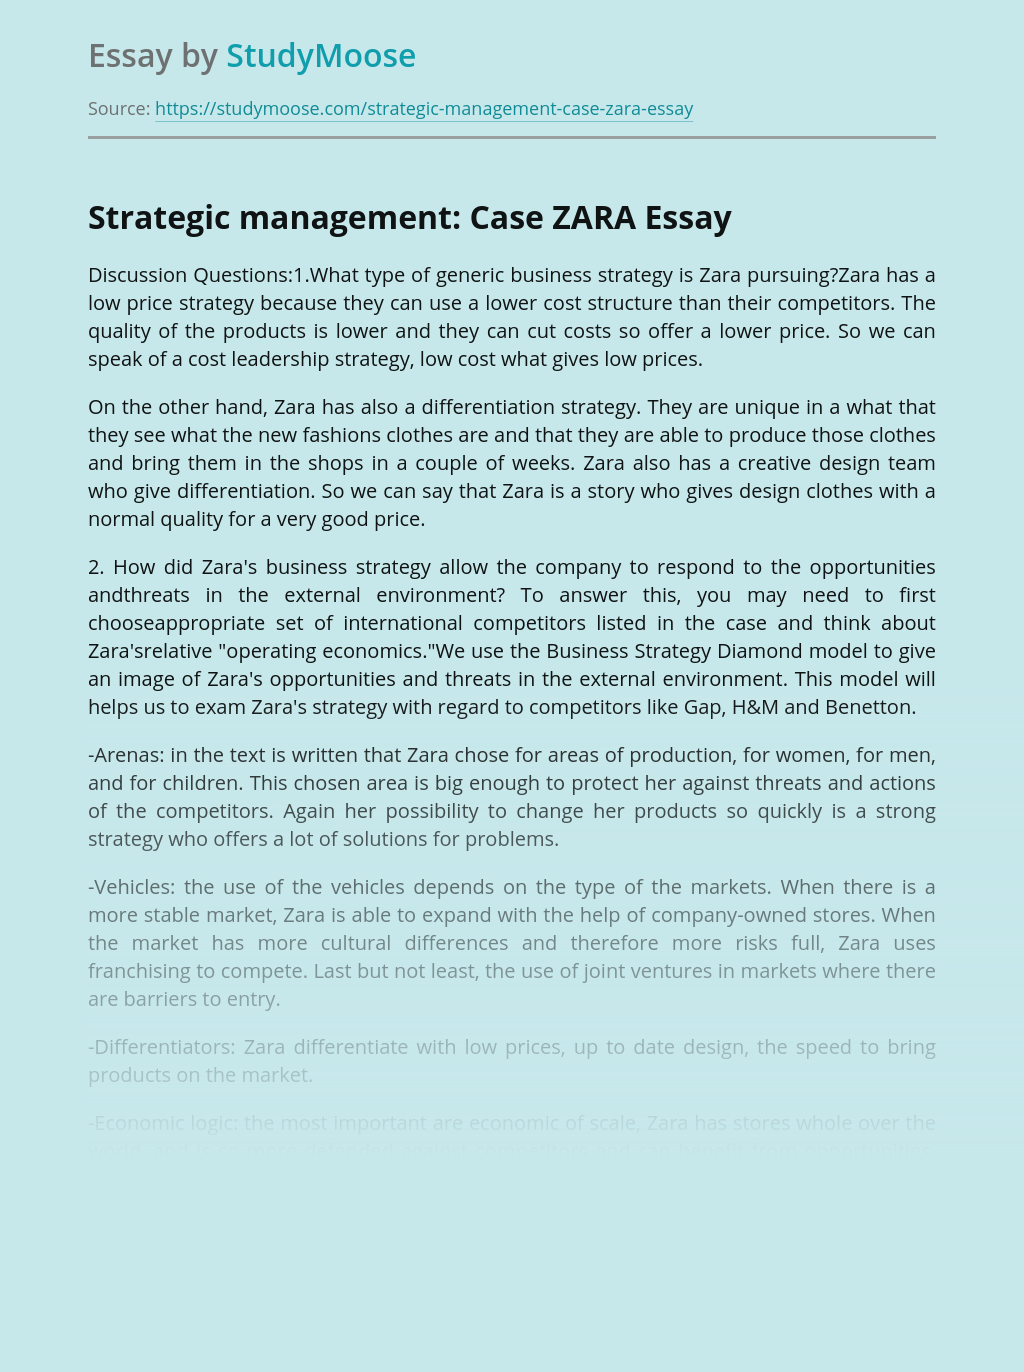 Strategic management: Case ZARA